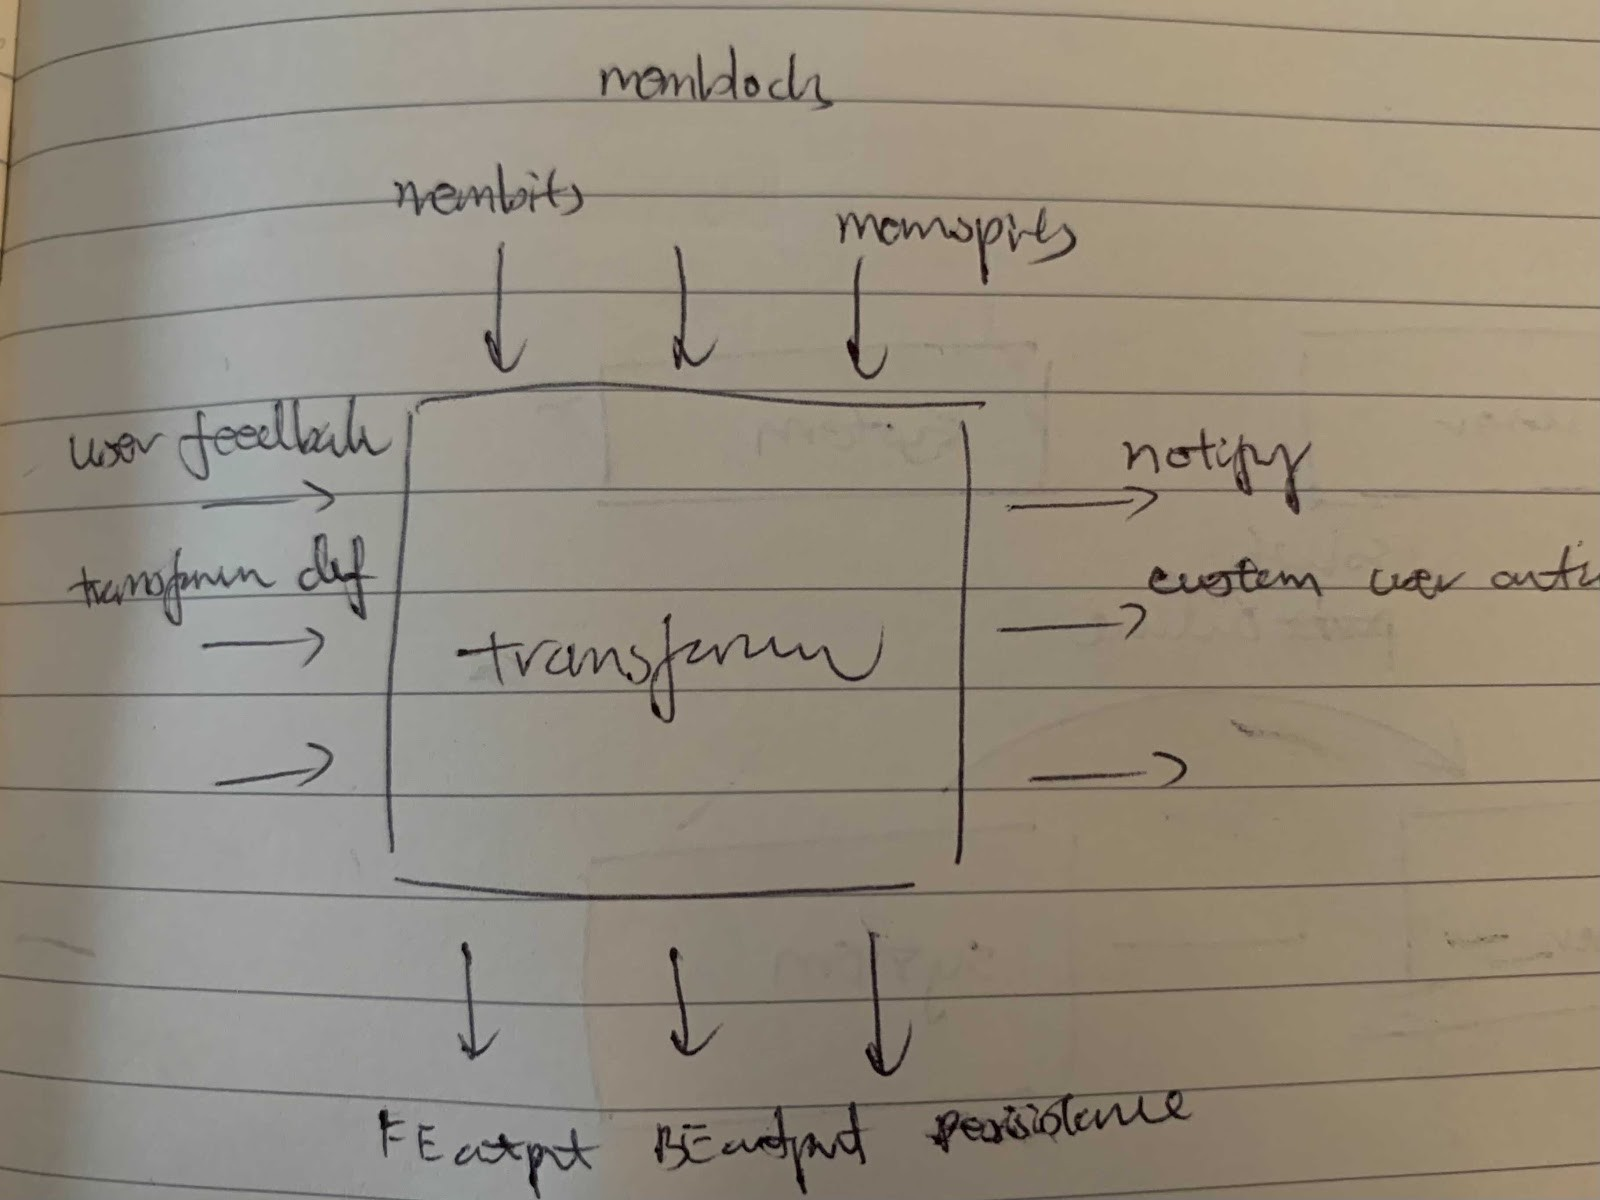 Transformer architecture with standard inputs and outputs encapsulates AI models.